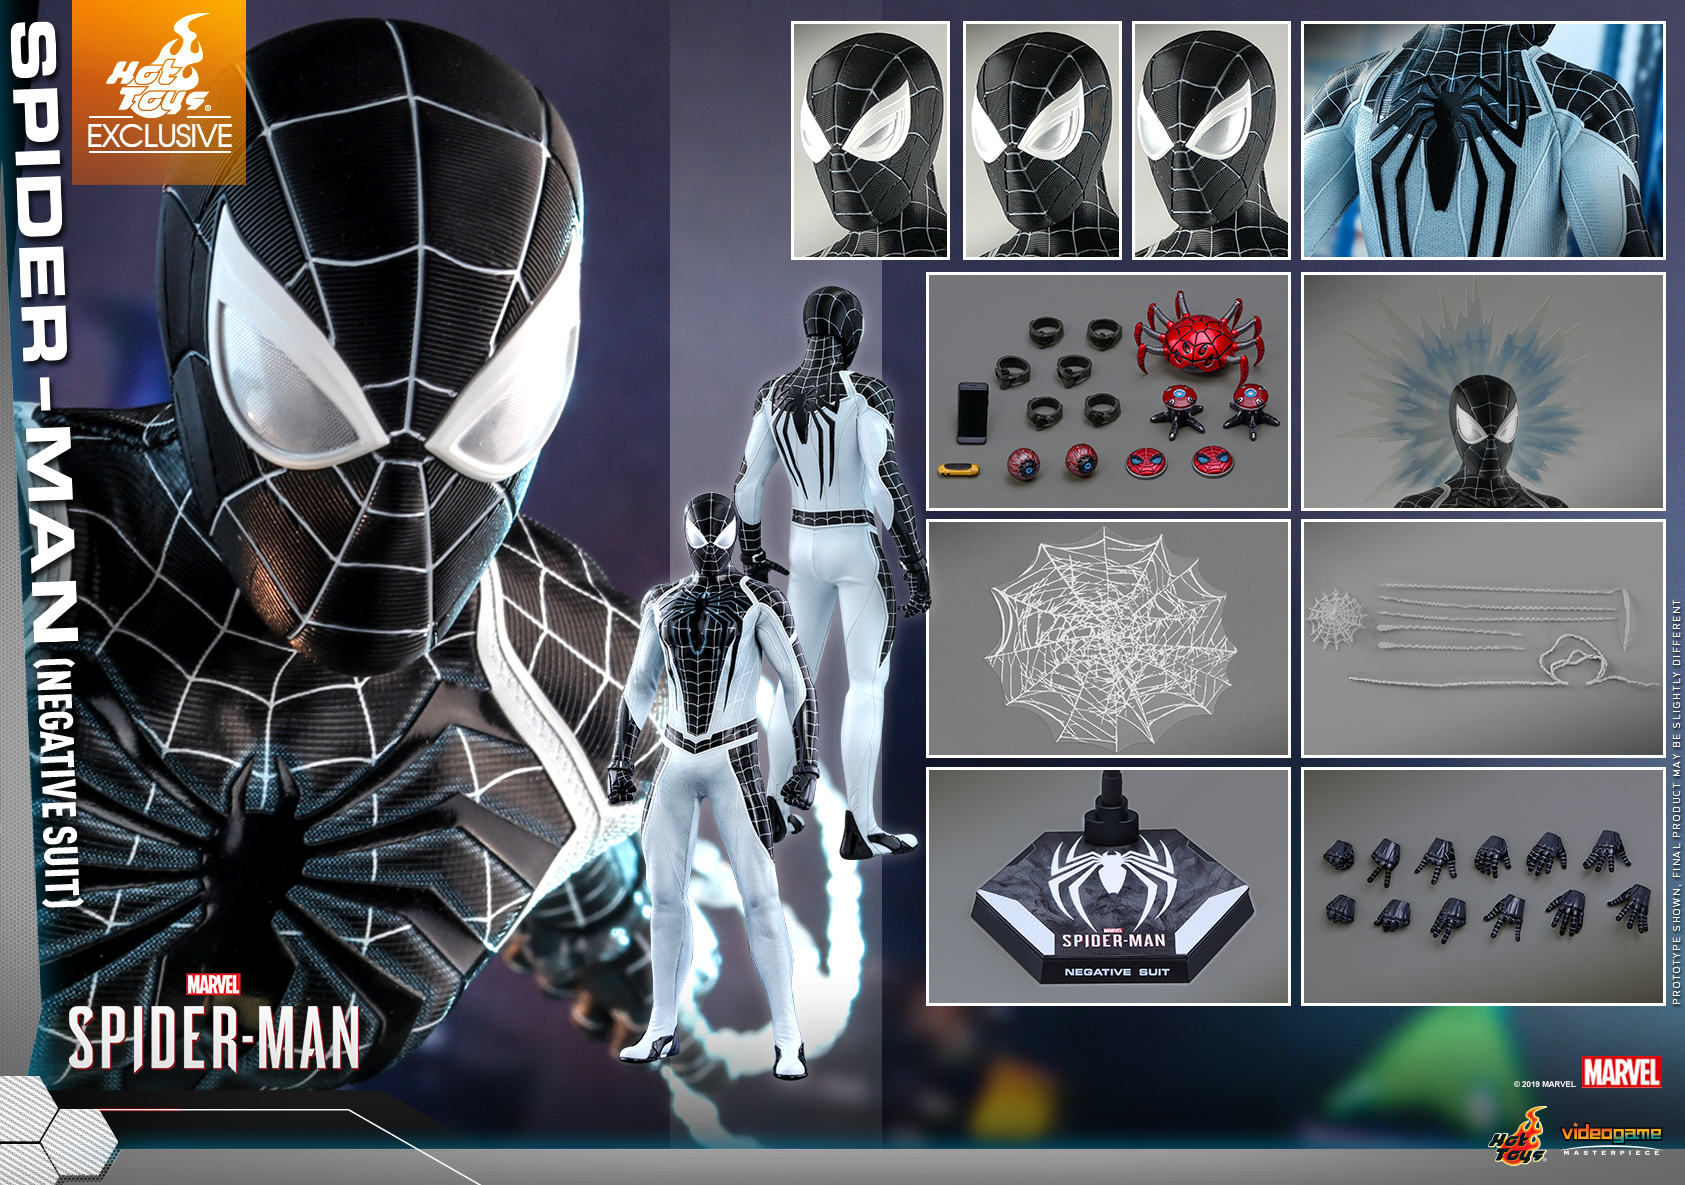 Hot Toys - Marvel Spider-Man - Spider-Man (Negative Suit) collectible figure_PR15